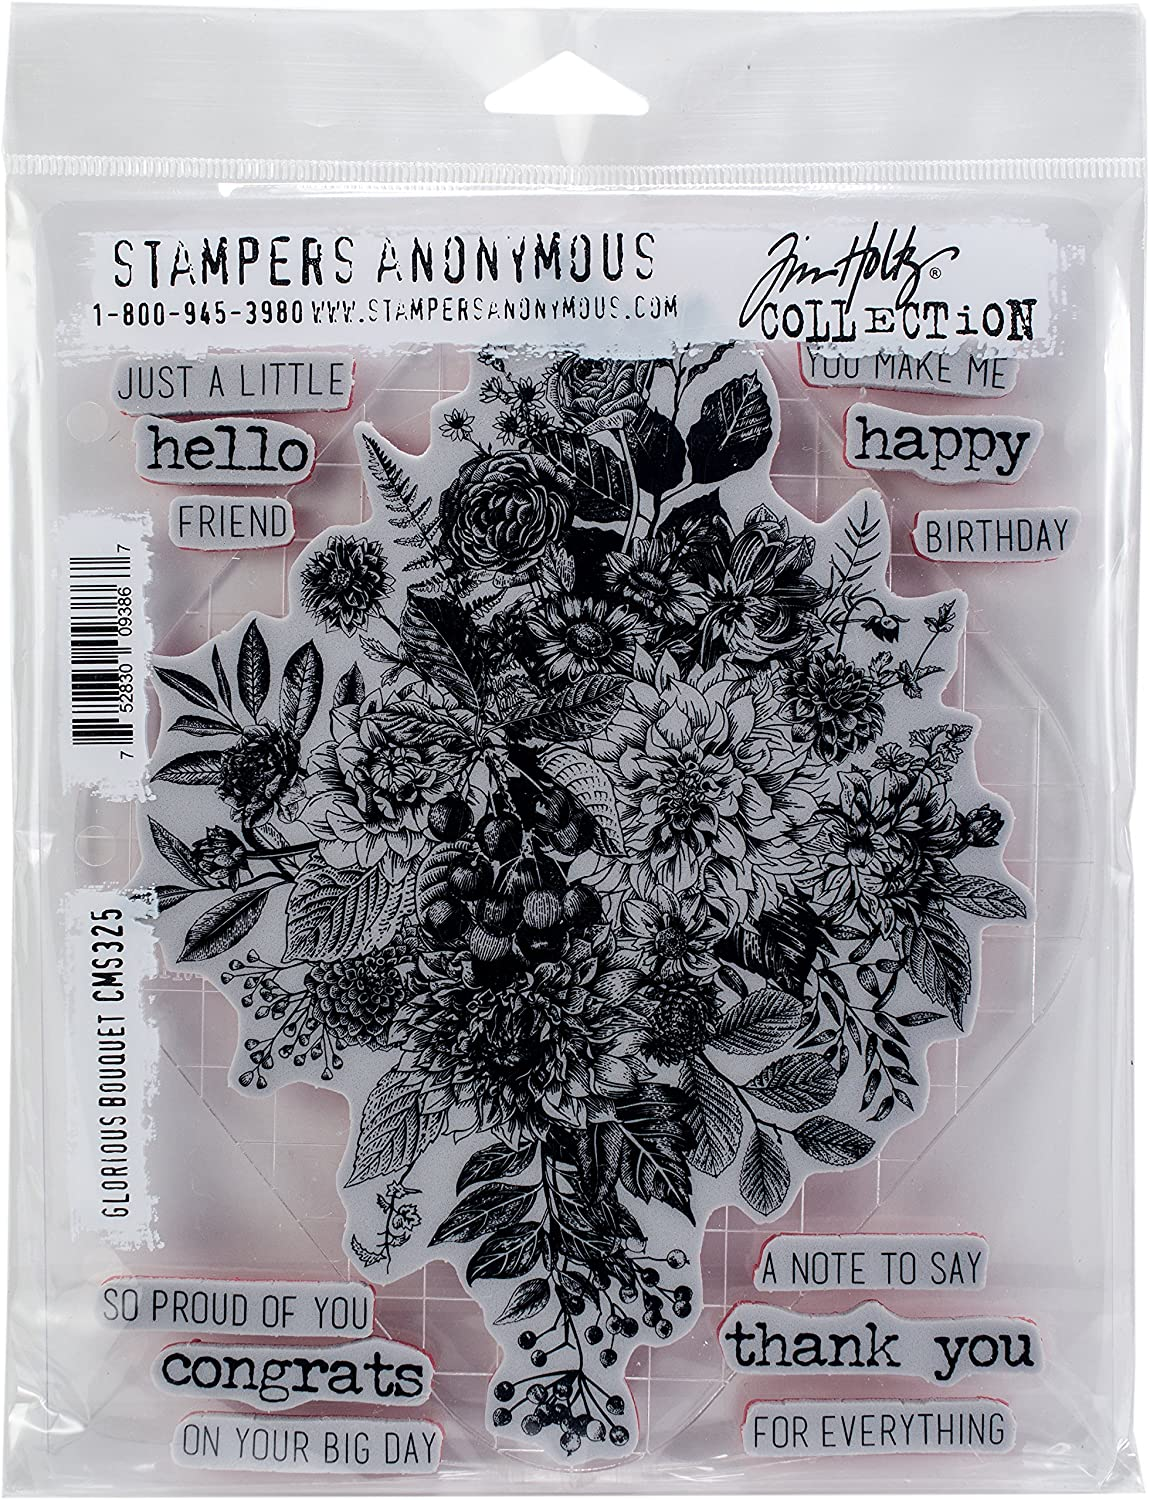 Tim Holtz - Stampers Anon Cling RBBR Stamp Set, us:one size, Glorious Bouquet W/Grid Block